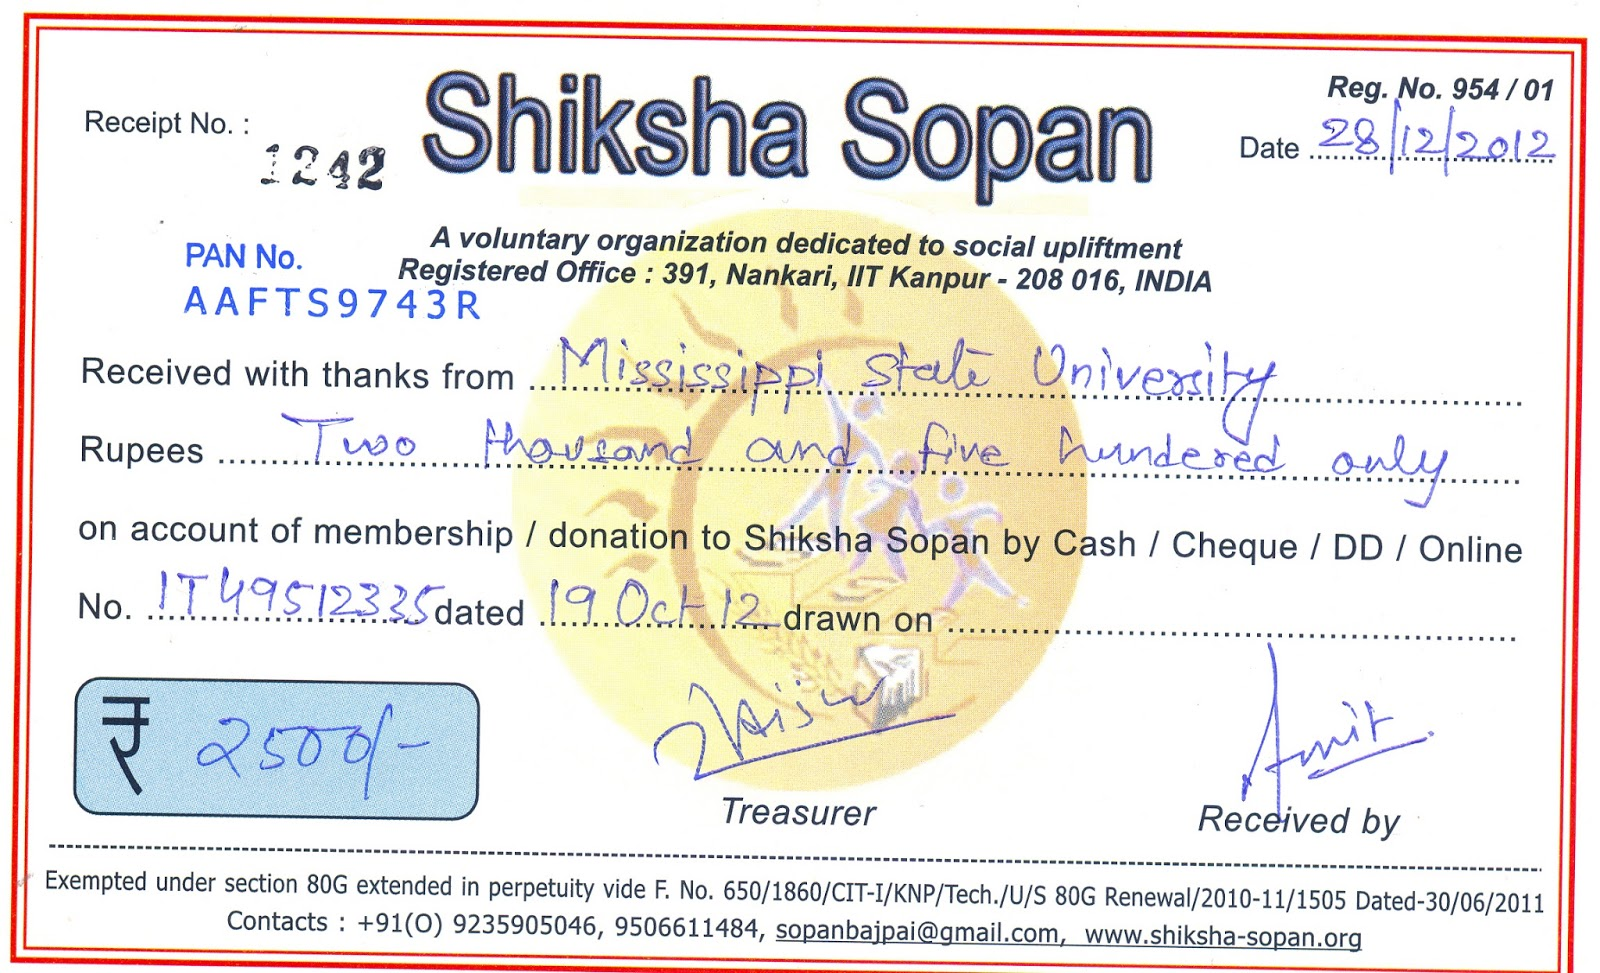 contribution receipt october 2012 shiksha sopan